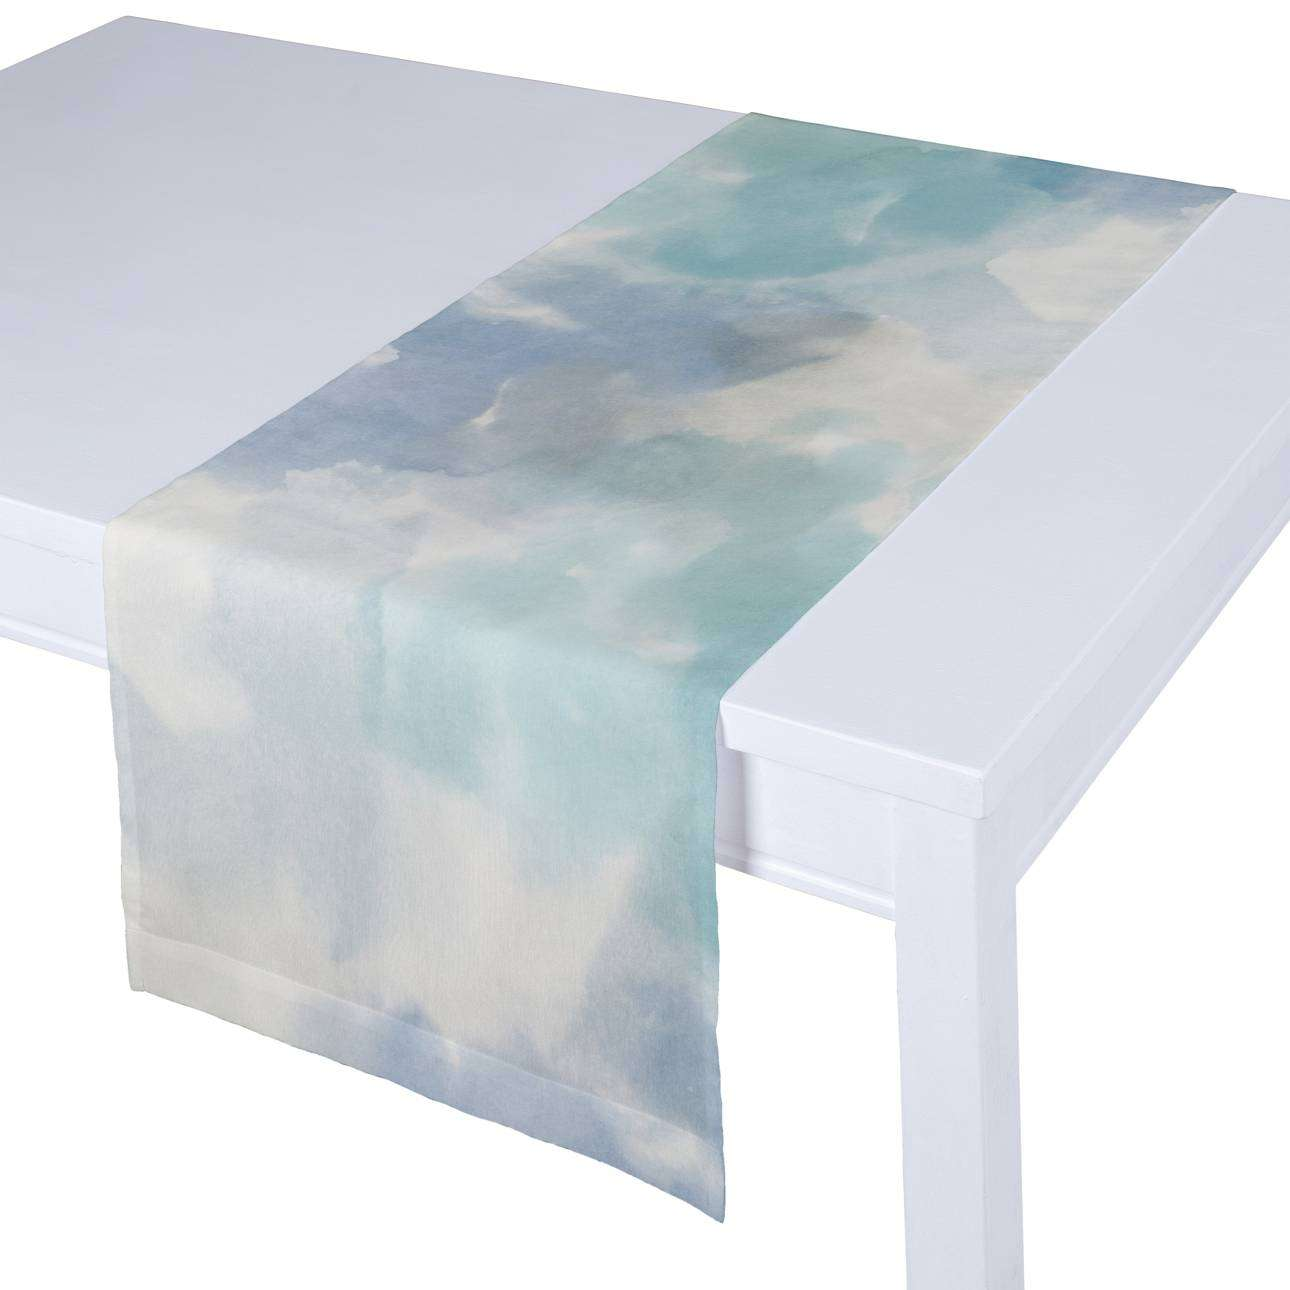 Table runner in collection Aquarelle, fabric: 140-67